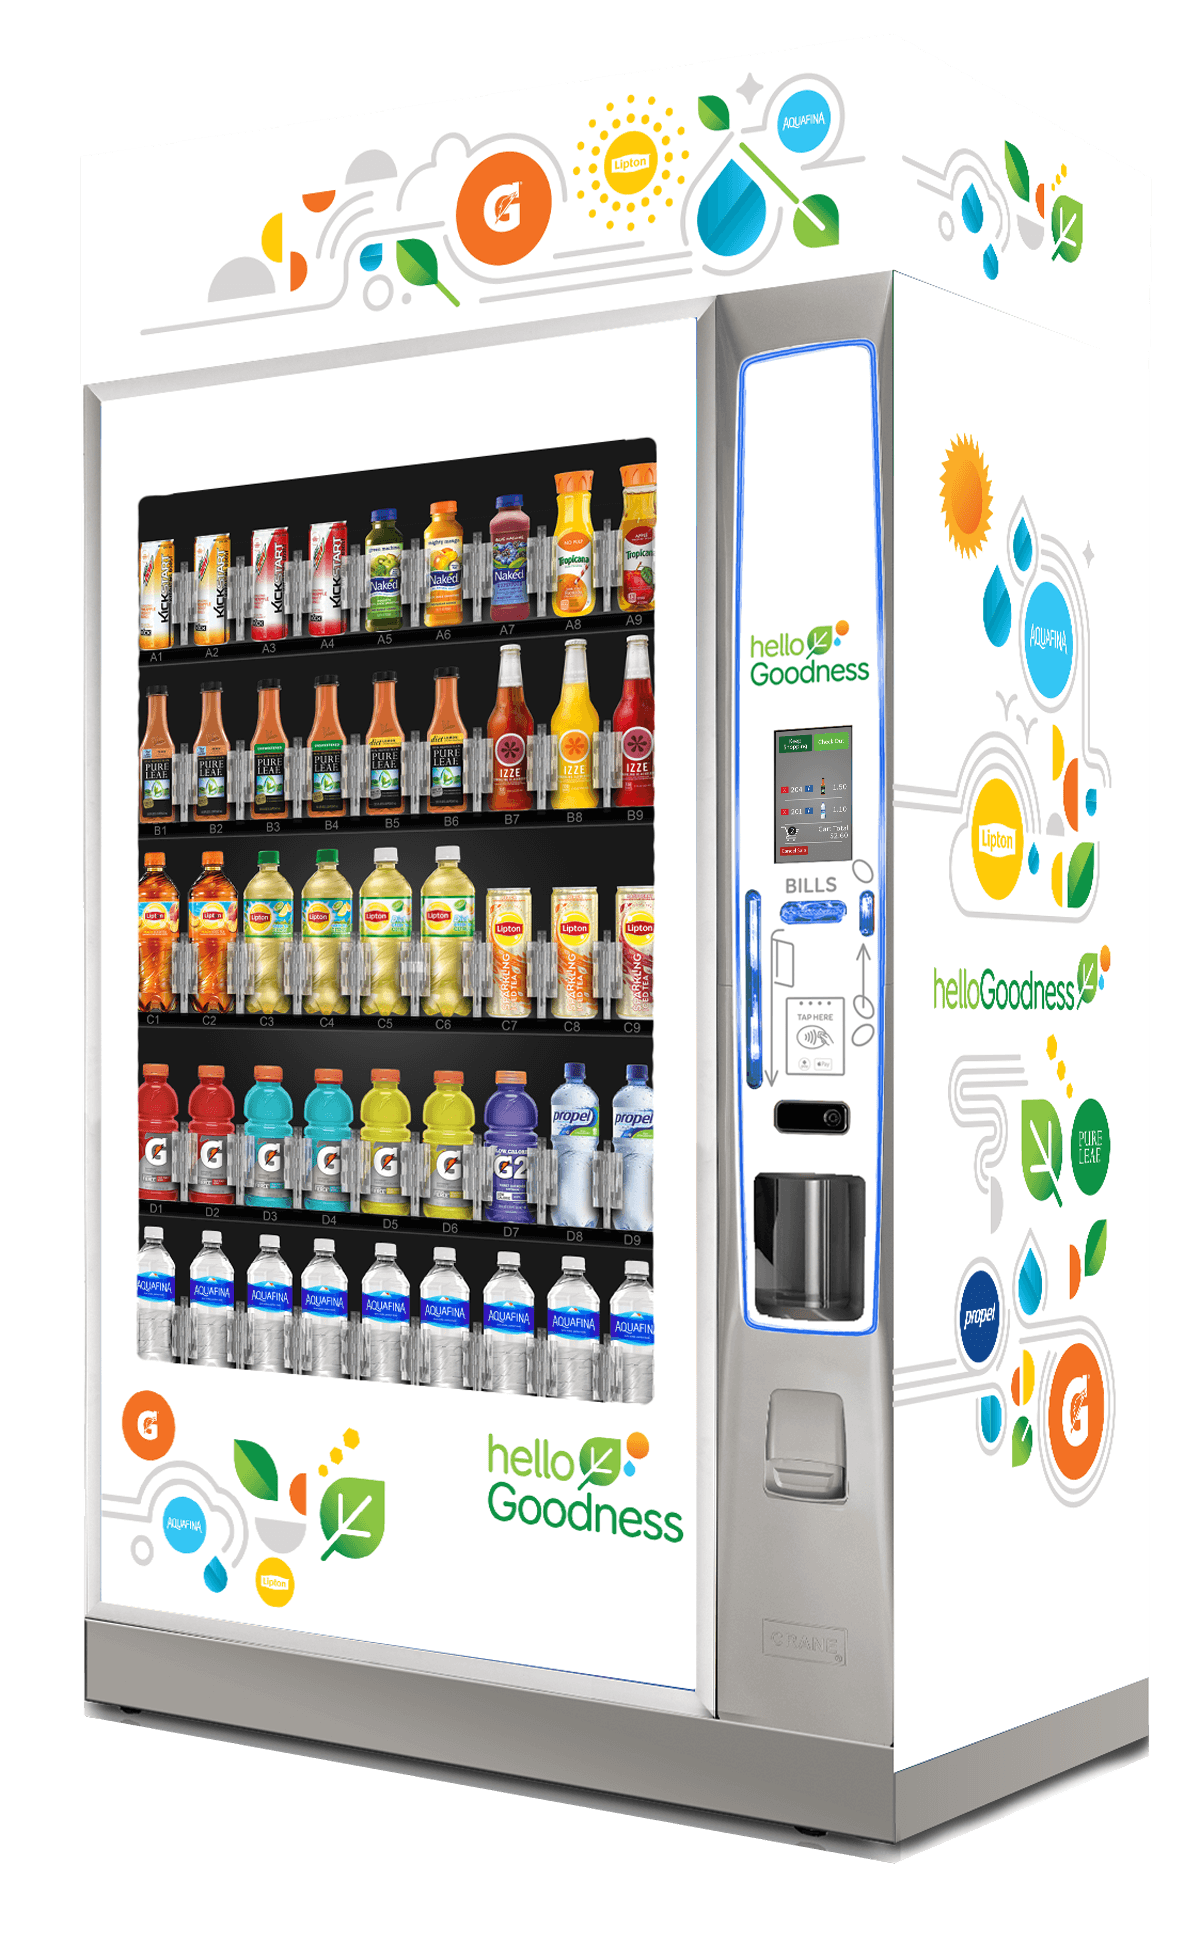 Images of Cold Beverages Vending Machines